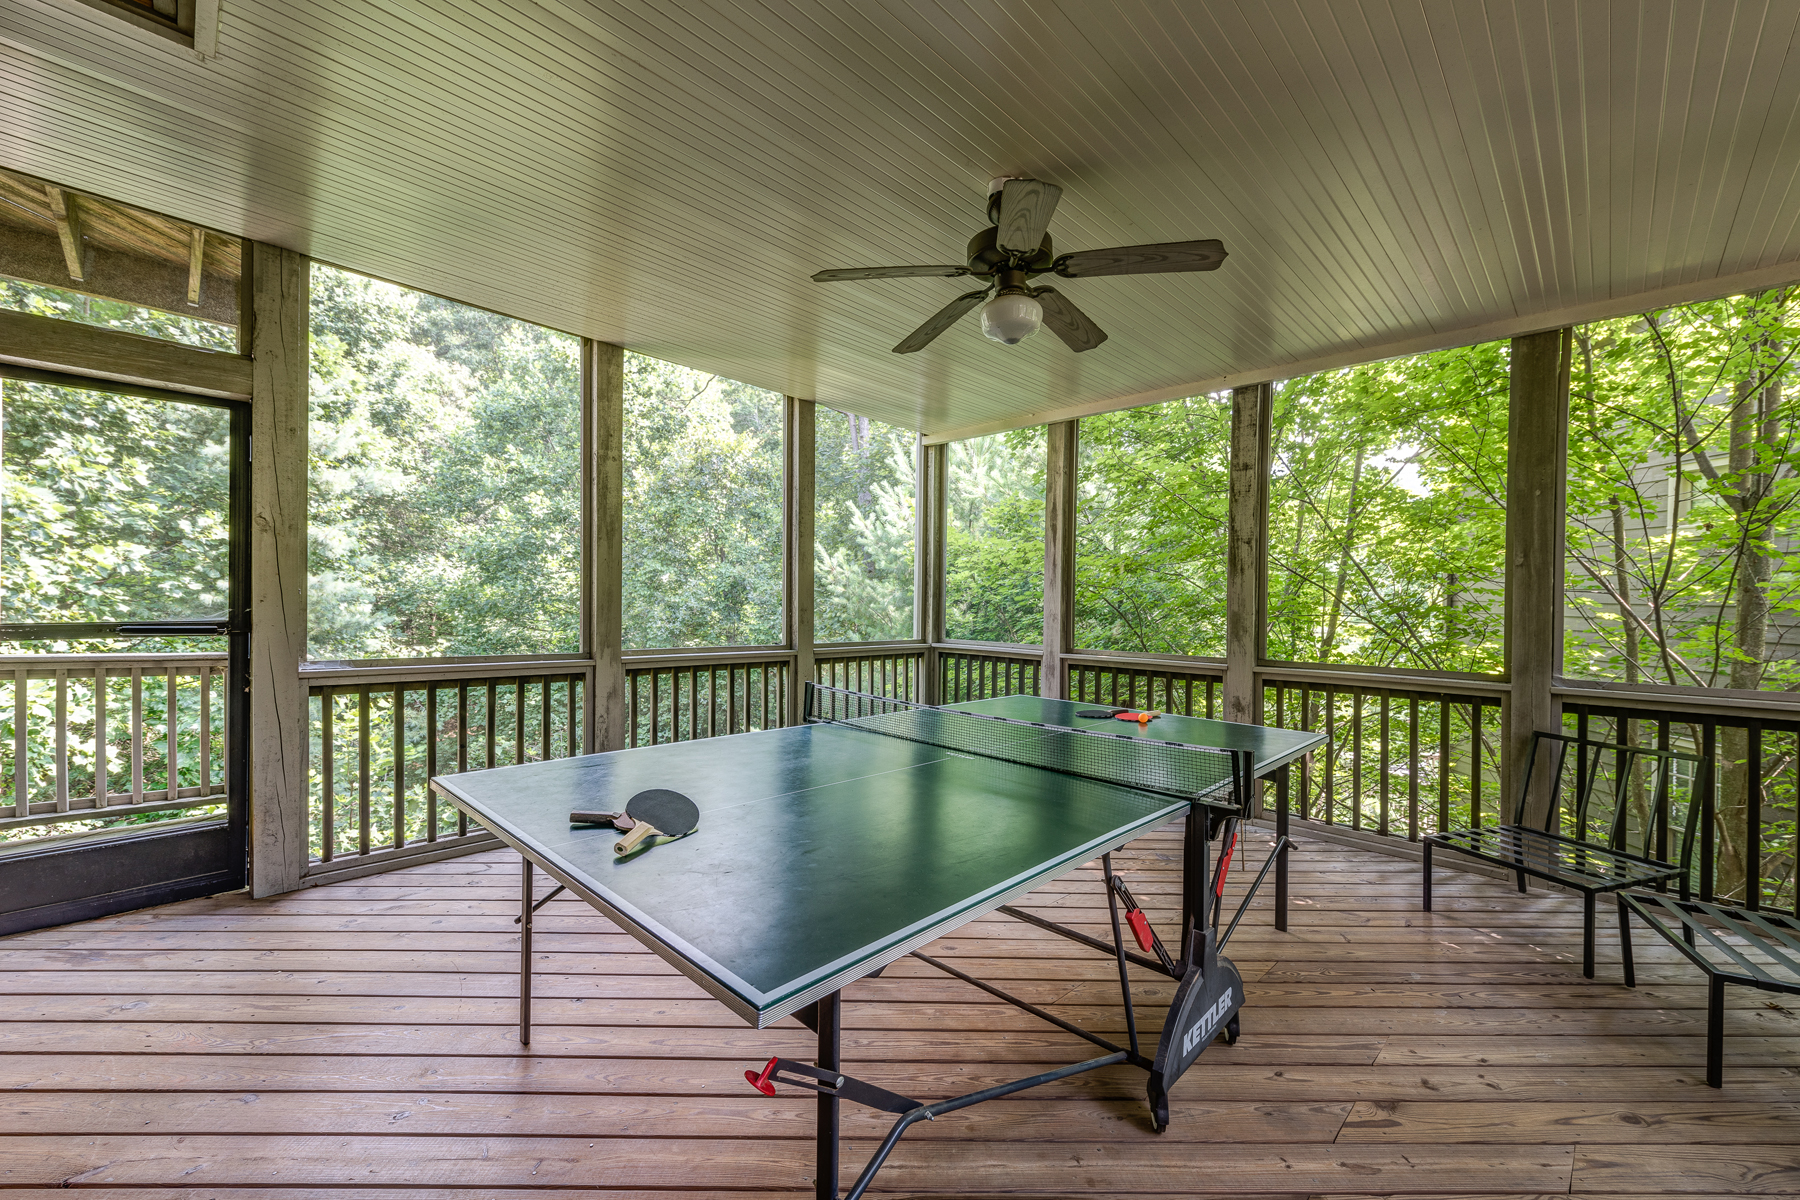 Additional photo for property listing at Big Canoe Is A Mountain Community For A Perfect Getaway 9 Laurel Ridge Way Big Canoe, Georgia 30143 United States